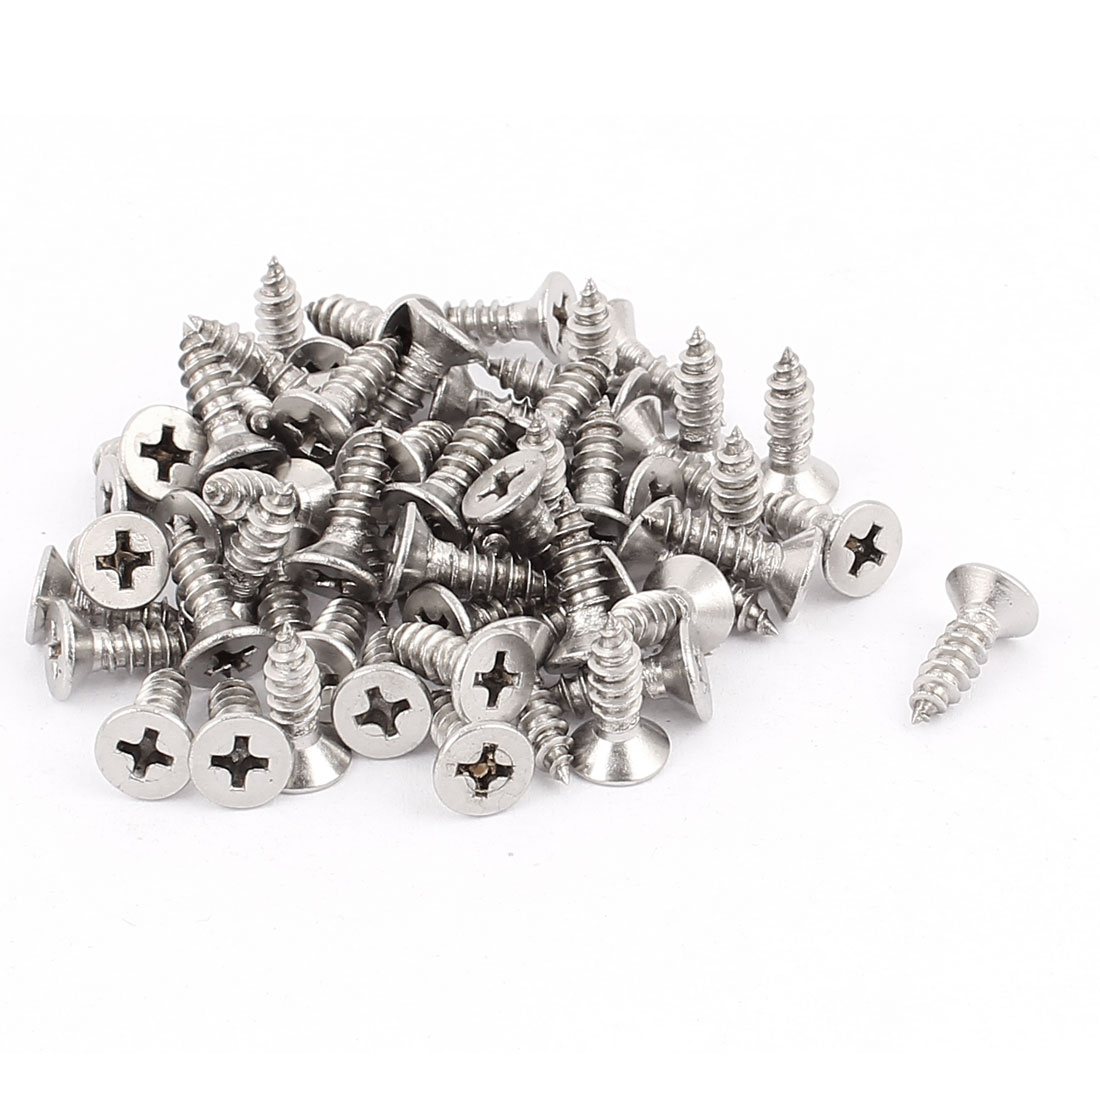 4.8mm x 16mm Flat Head Phillips Self Tapping Screw Fasteners 60 Pcs